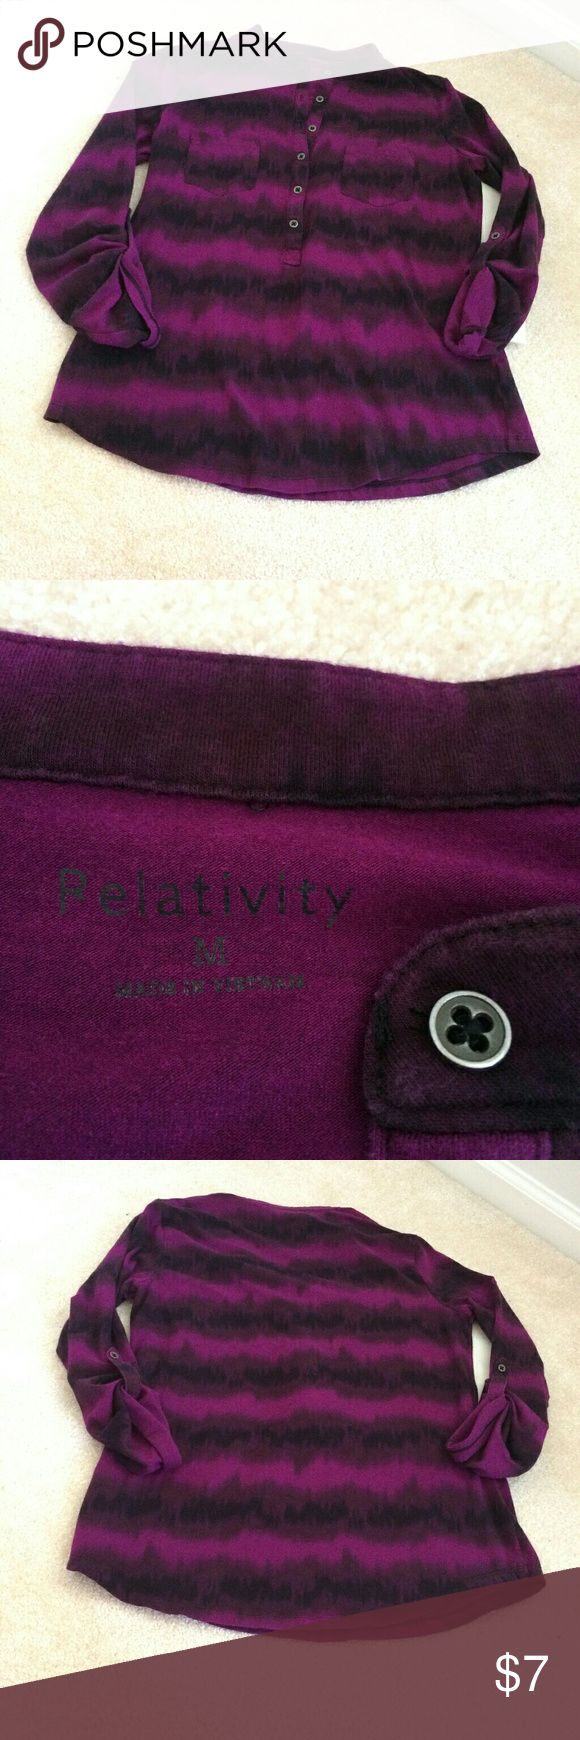 relativity womens medium purple dip dye blouse but this cute top from relativity is in excellent condition! Relativity Tops Button Down Shirts